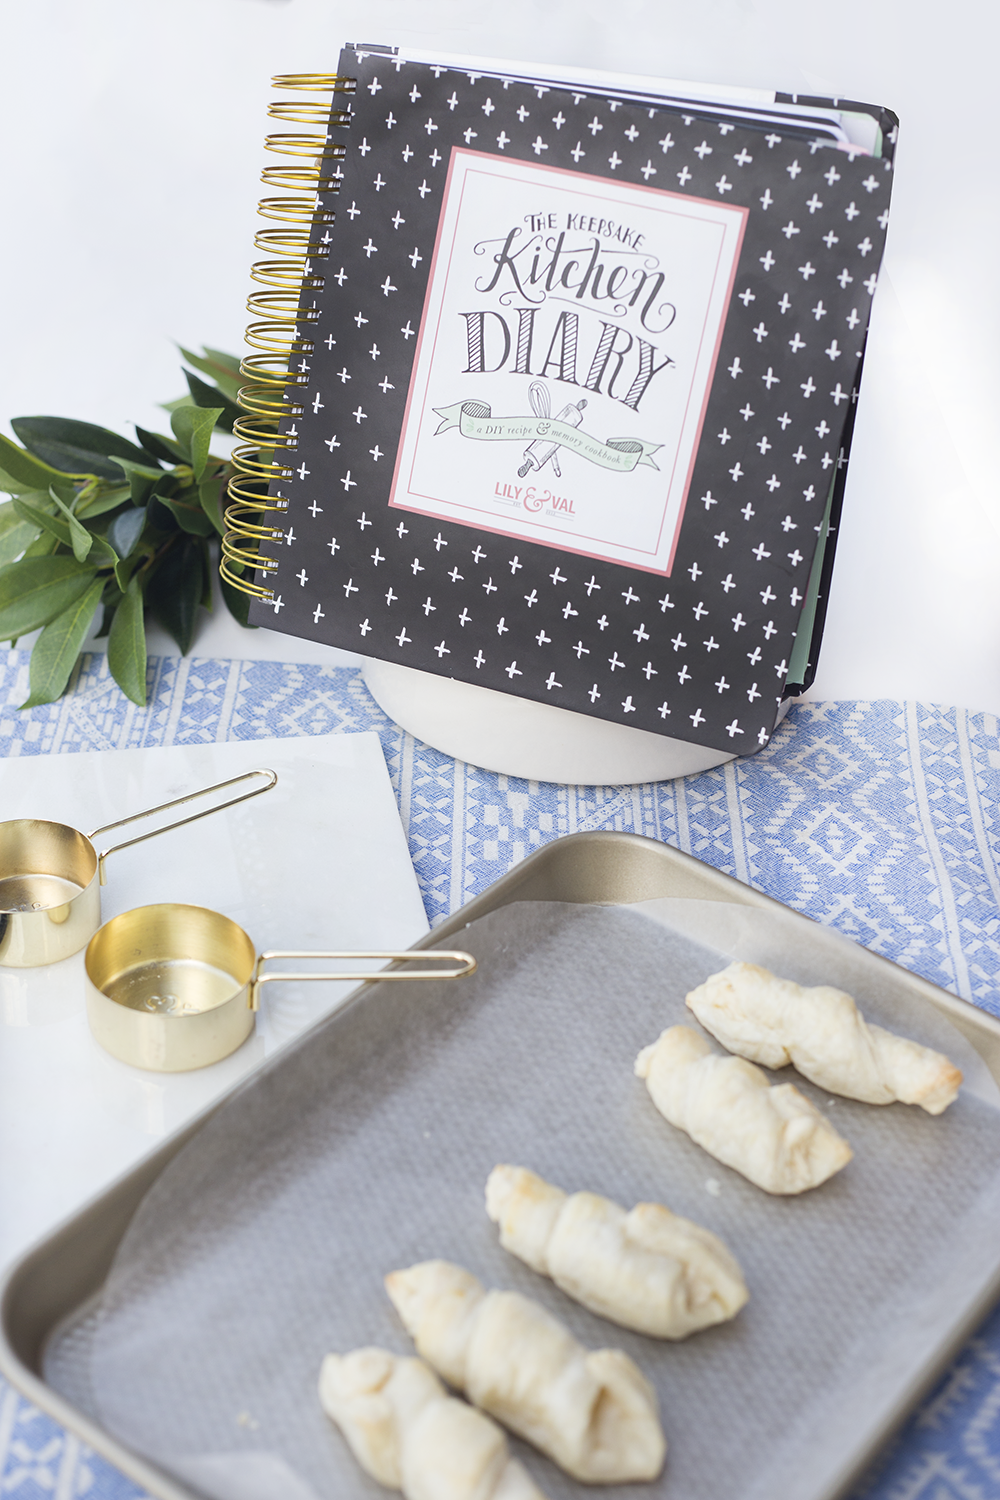 Keepsake Kitchen Diary | Recipe Book | Memory Keeping